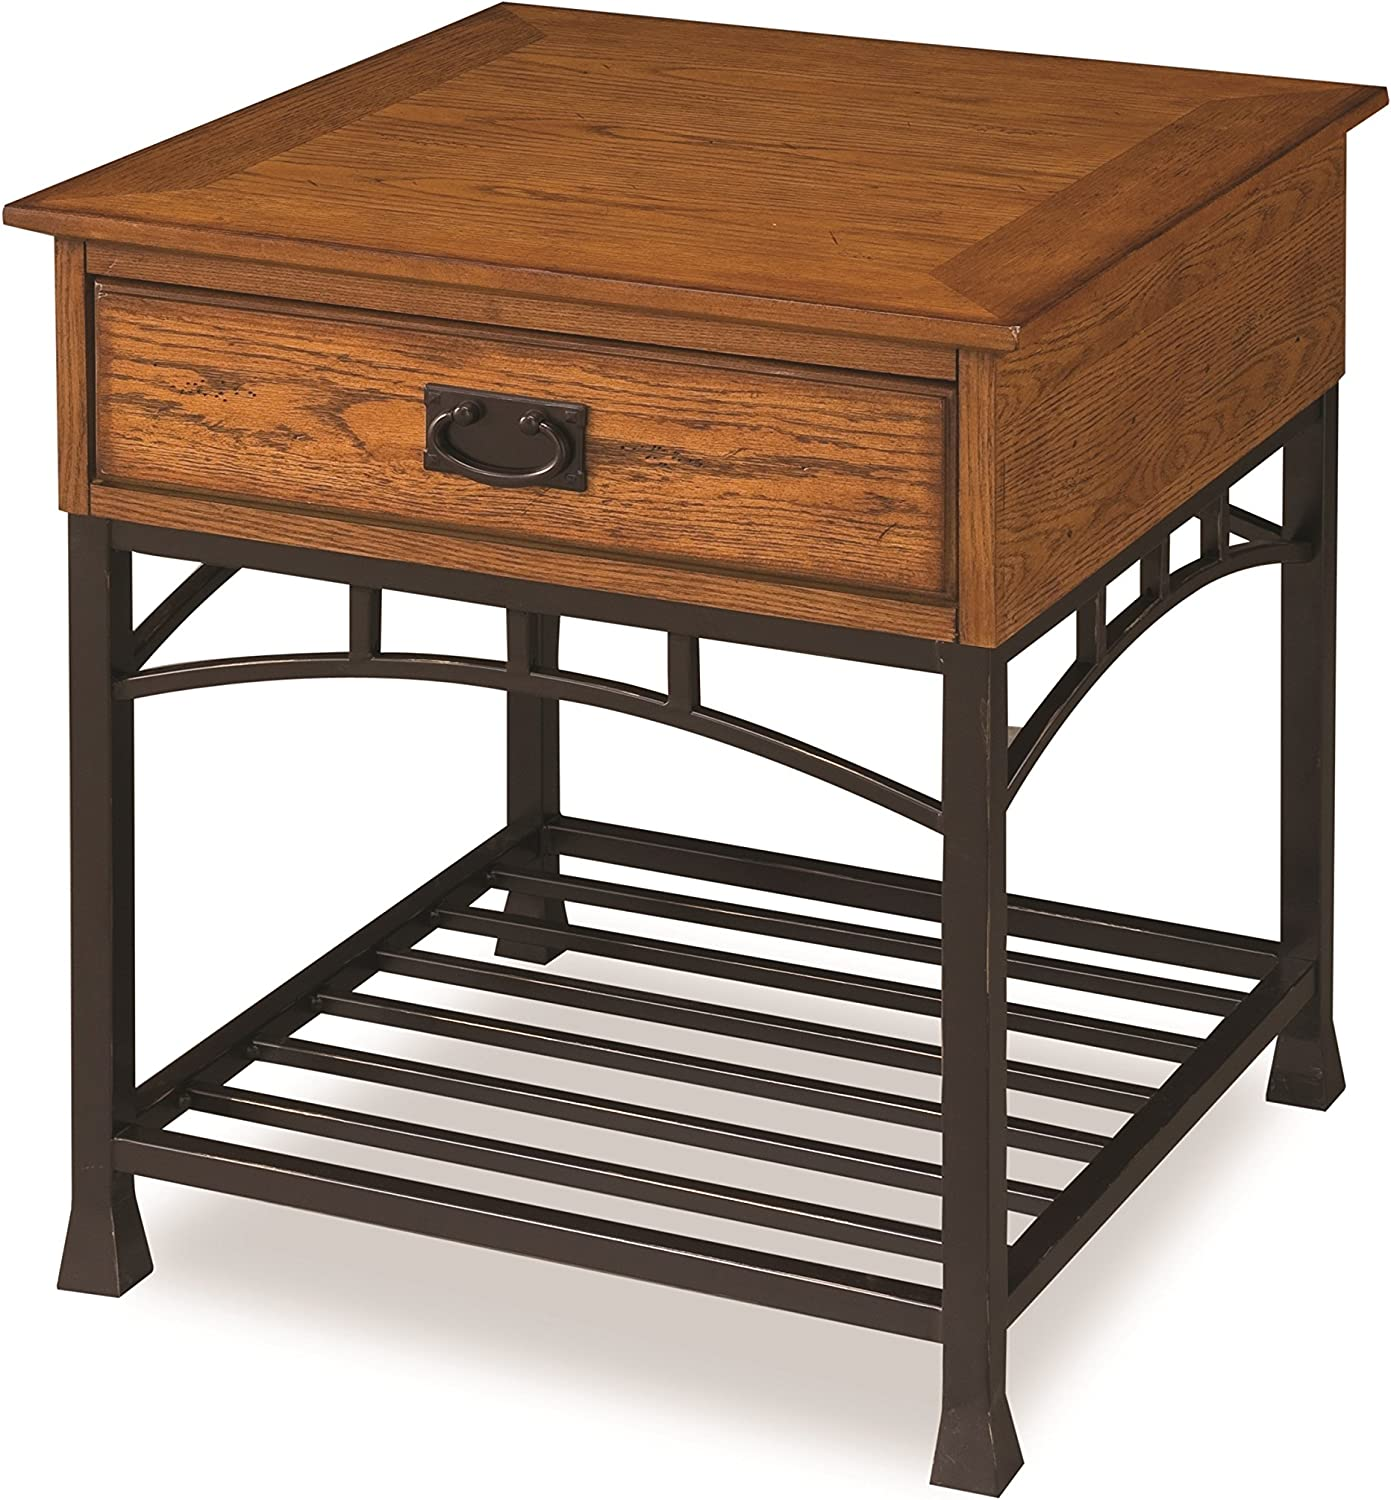 Amazon Com Modern Craftsman Distressed Oak End Table By Home Styles Furniture Decor